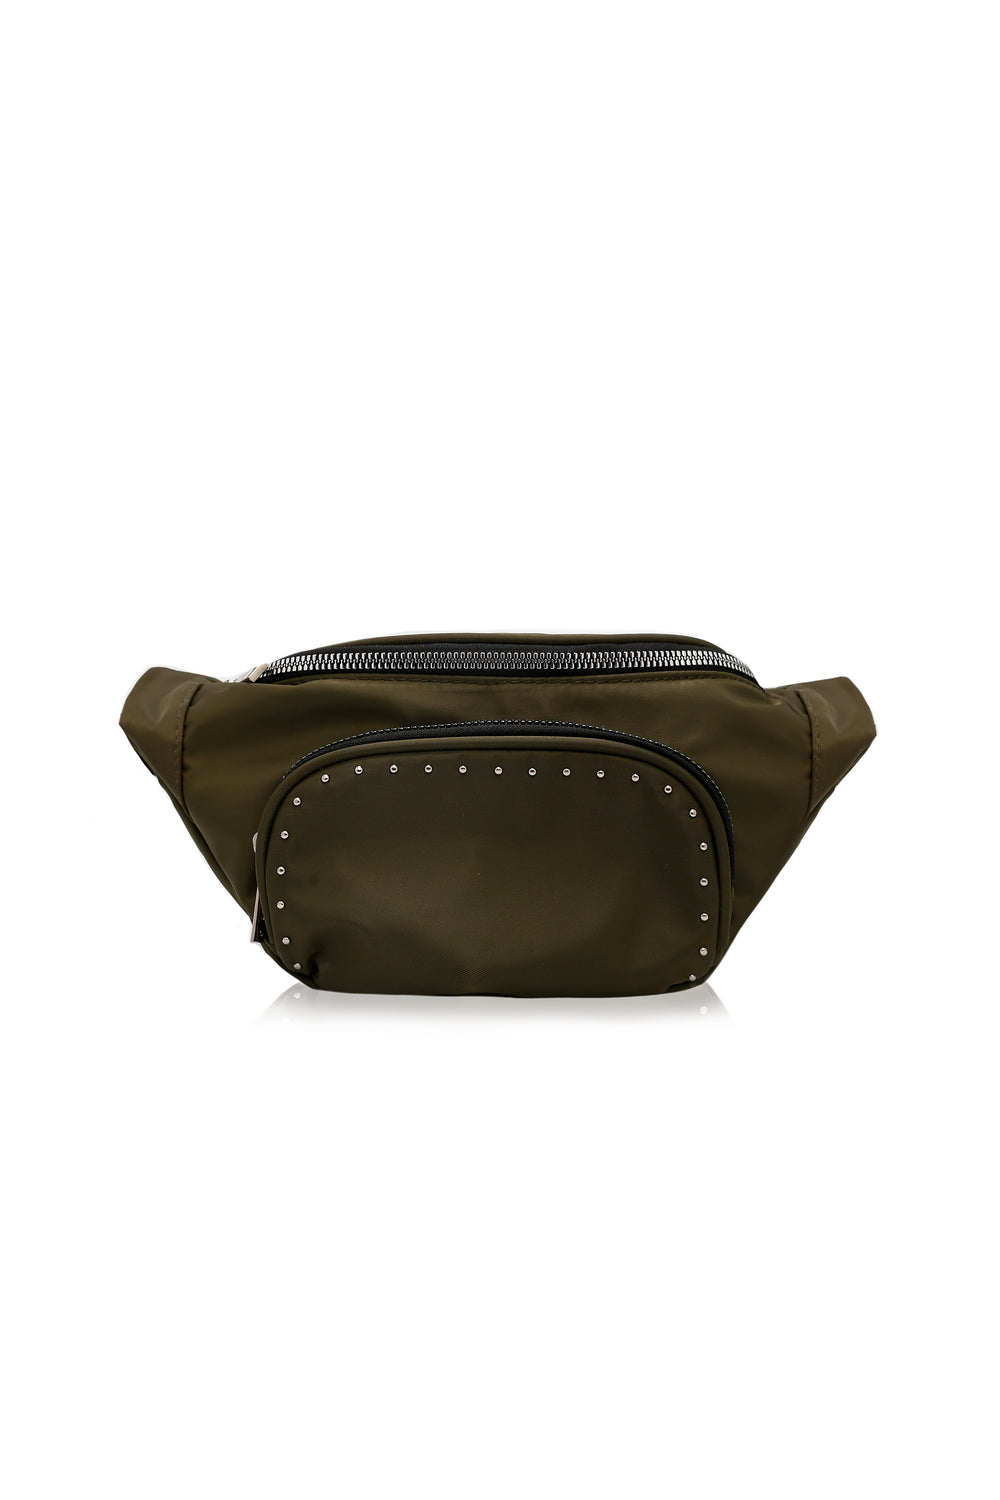 Essential Nylon Fanny Pack - Olive